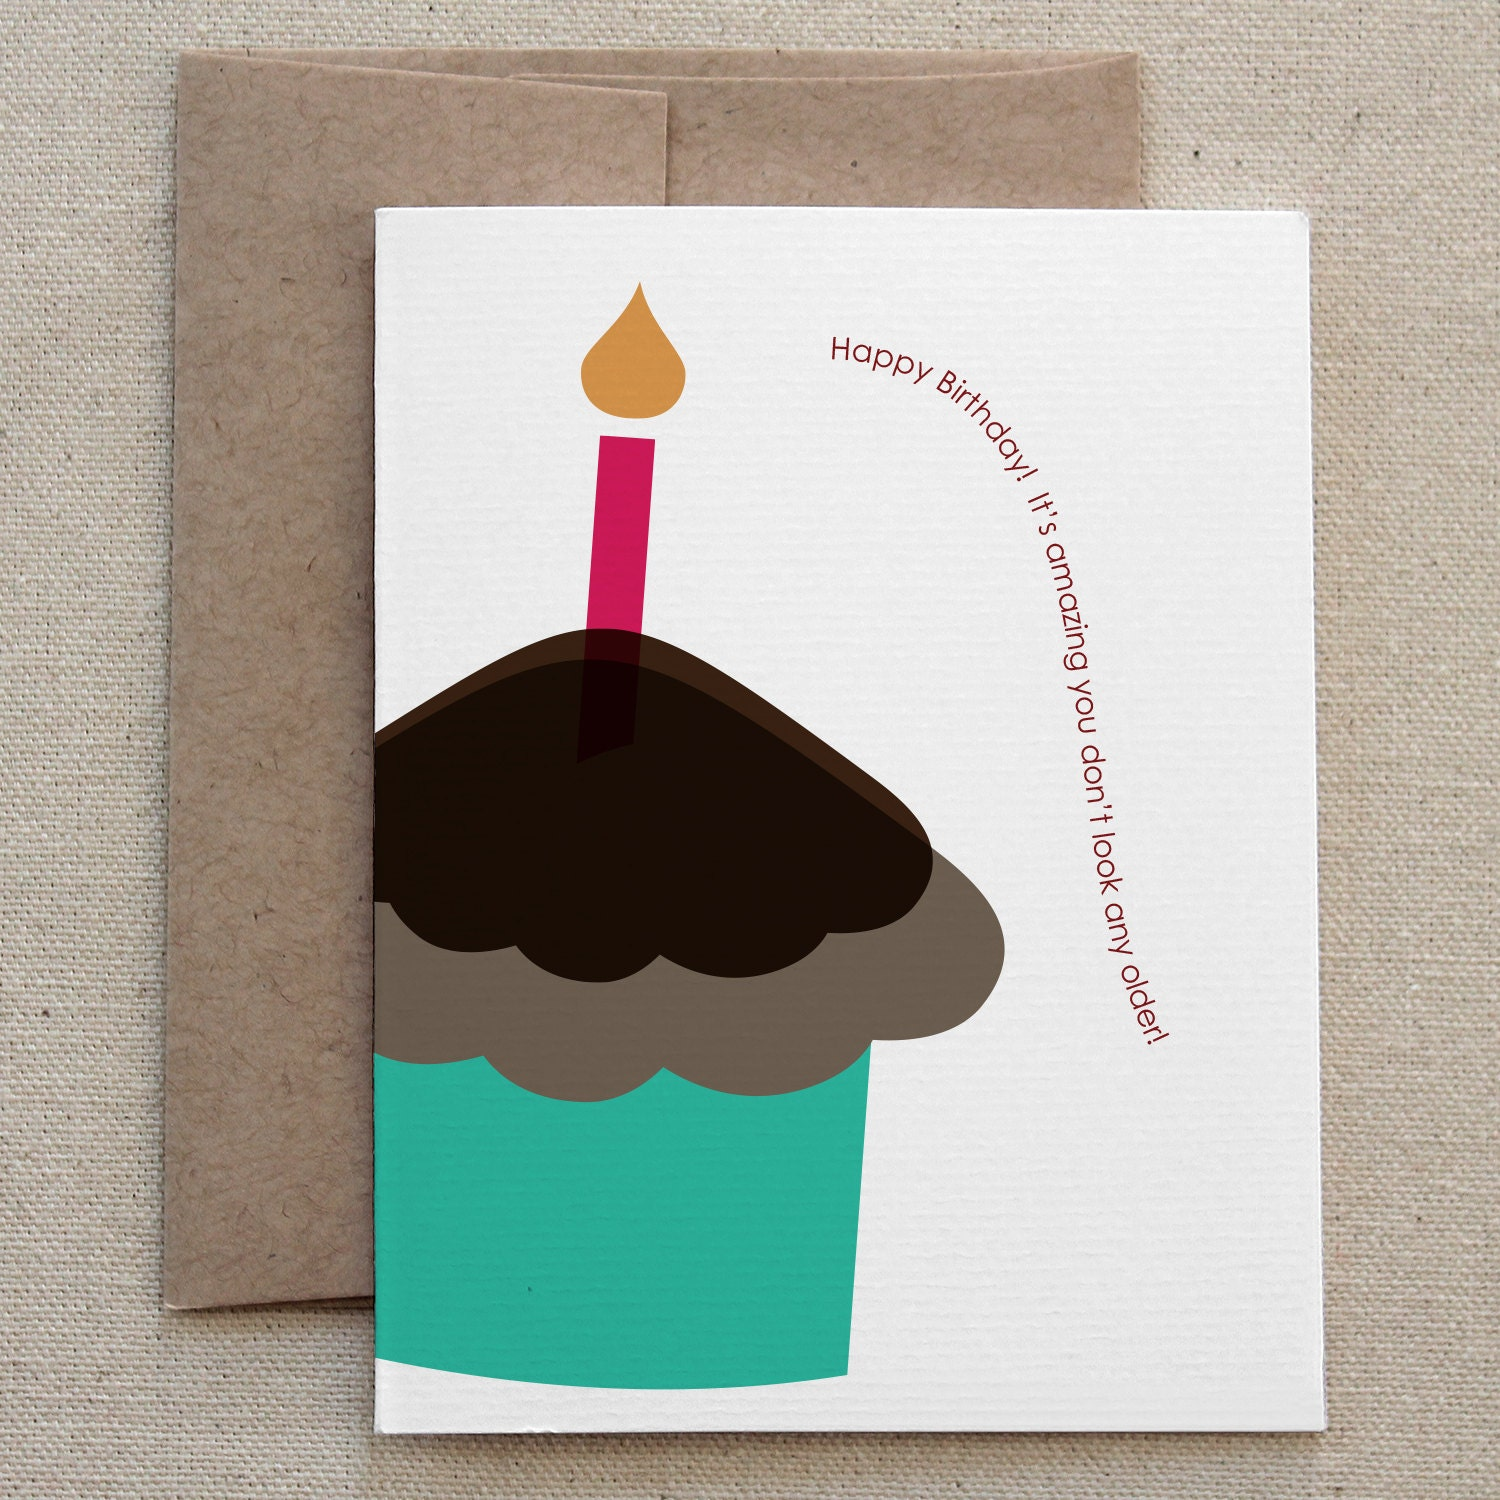 Funny Sarcastic Mean Birthday Card For Friend Man Or Woman